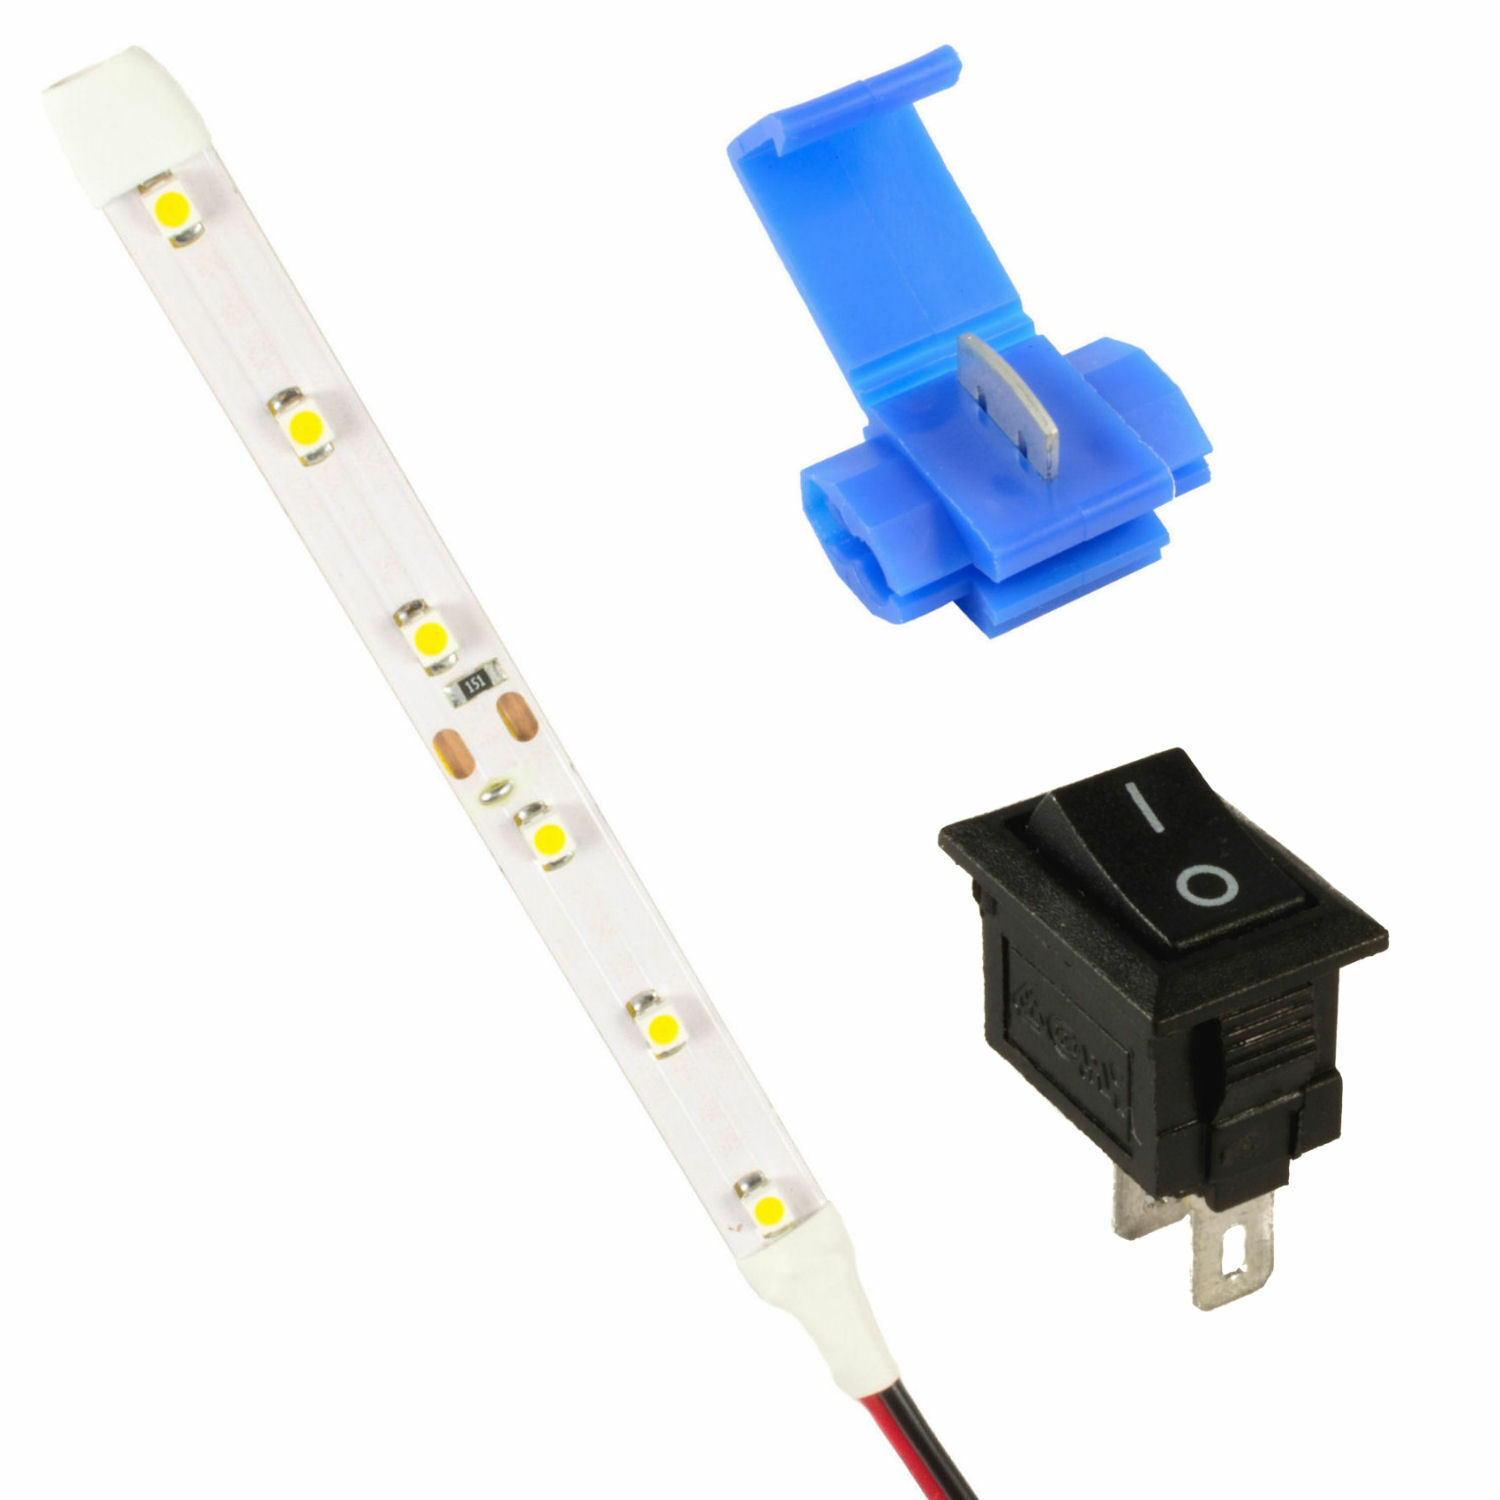 Todo Intermitente Led Colores Multiusos 12V 5mm Interruptor PP3 Conector